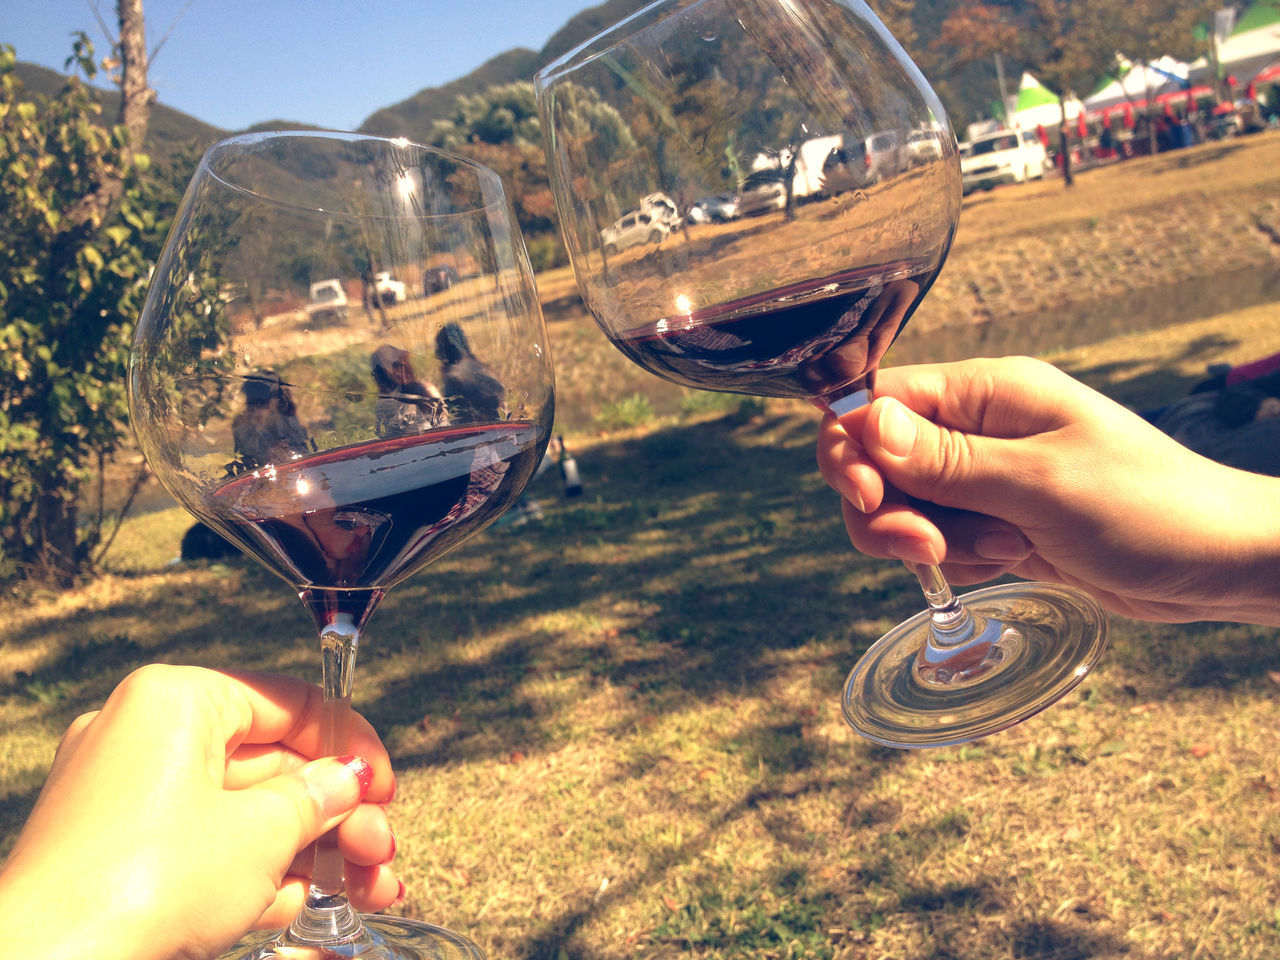 refreshment, drink, human hand, holding, glass, hand, alcohol, food and drink, human body part, wine, real people, wineglass, lifestyles, leisure activity, people, two people, focus on foreground, men, unrecognizable person, finger, red wine, drinking